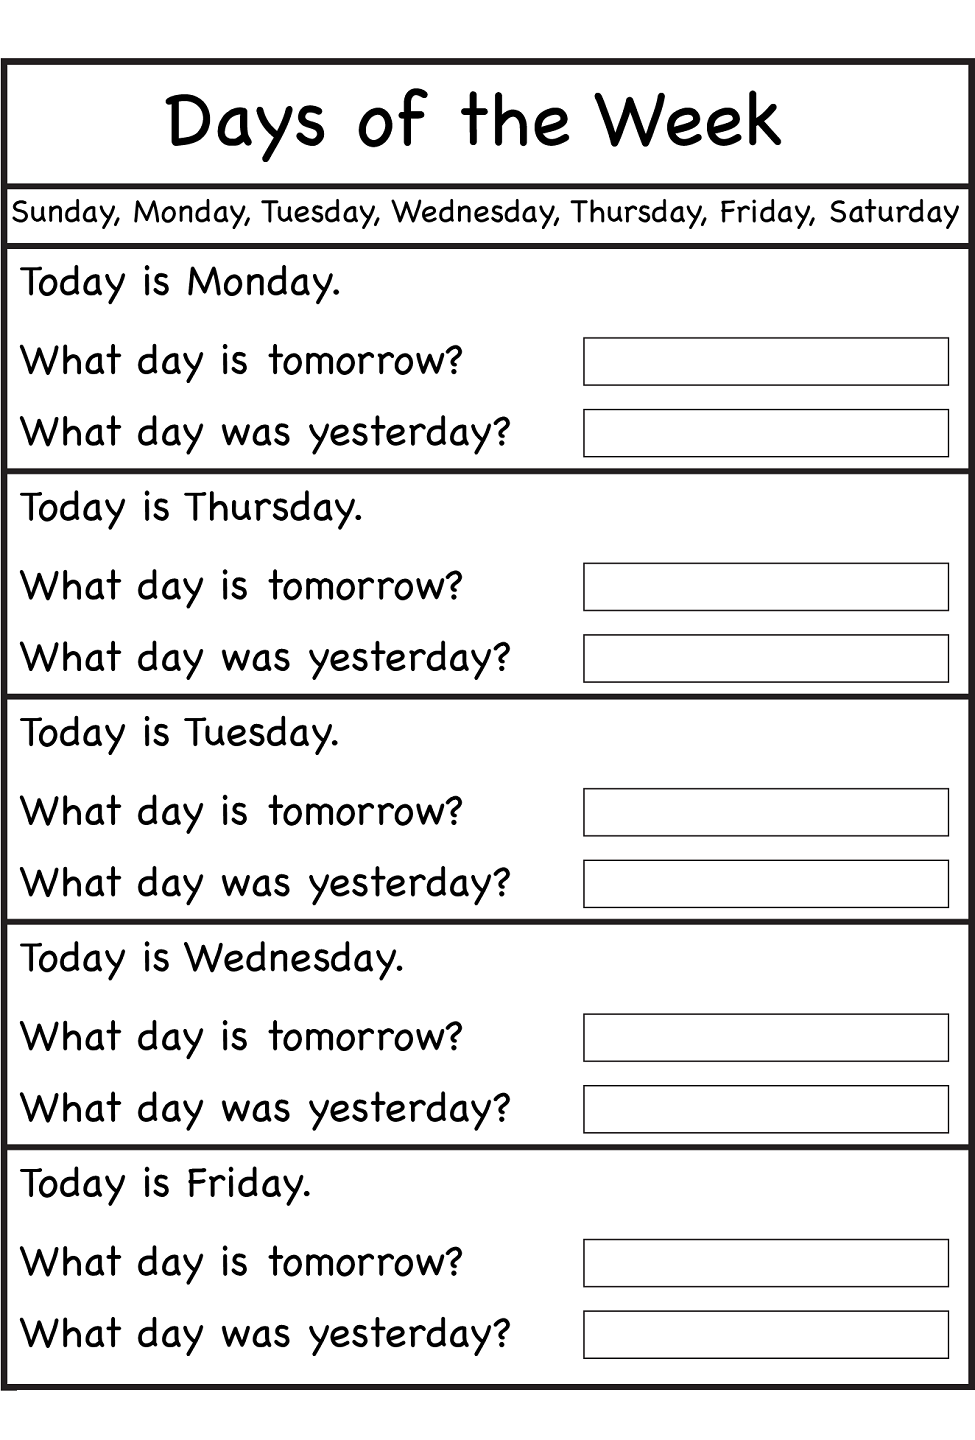 Days of the Week Worksheets | Activity Shelter | Kids Worksheets ...